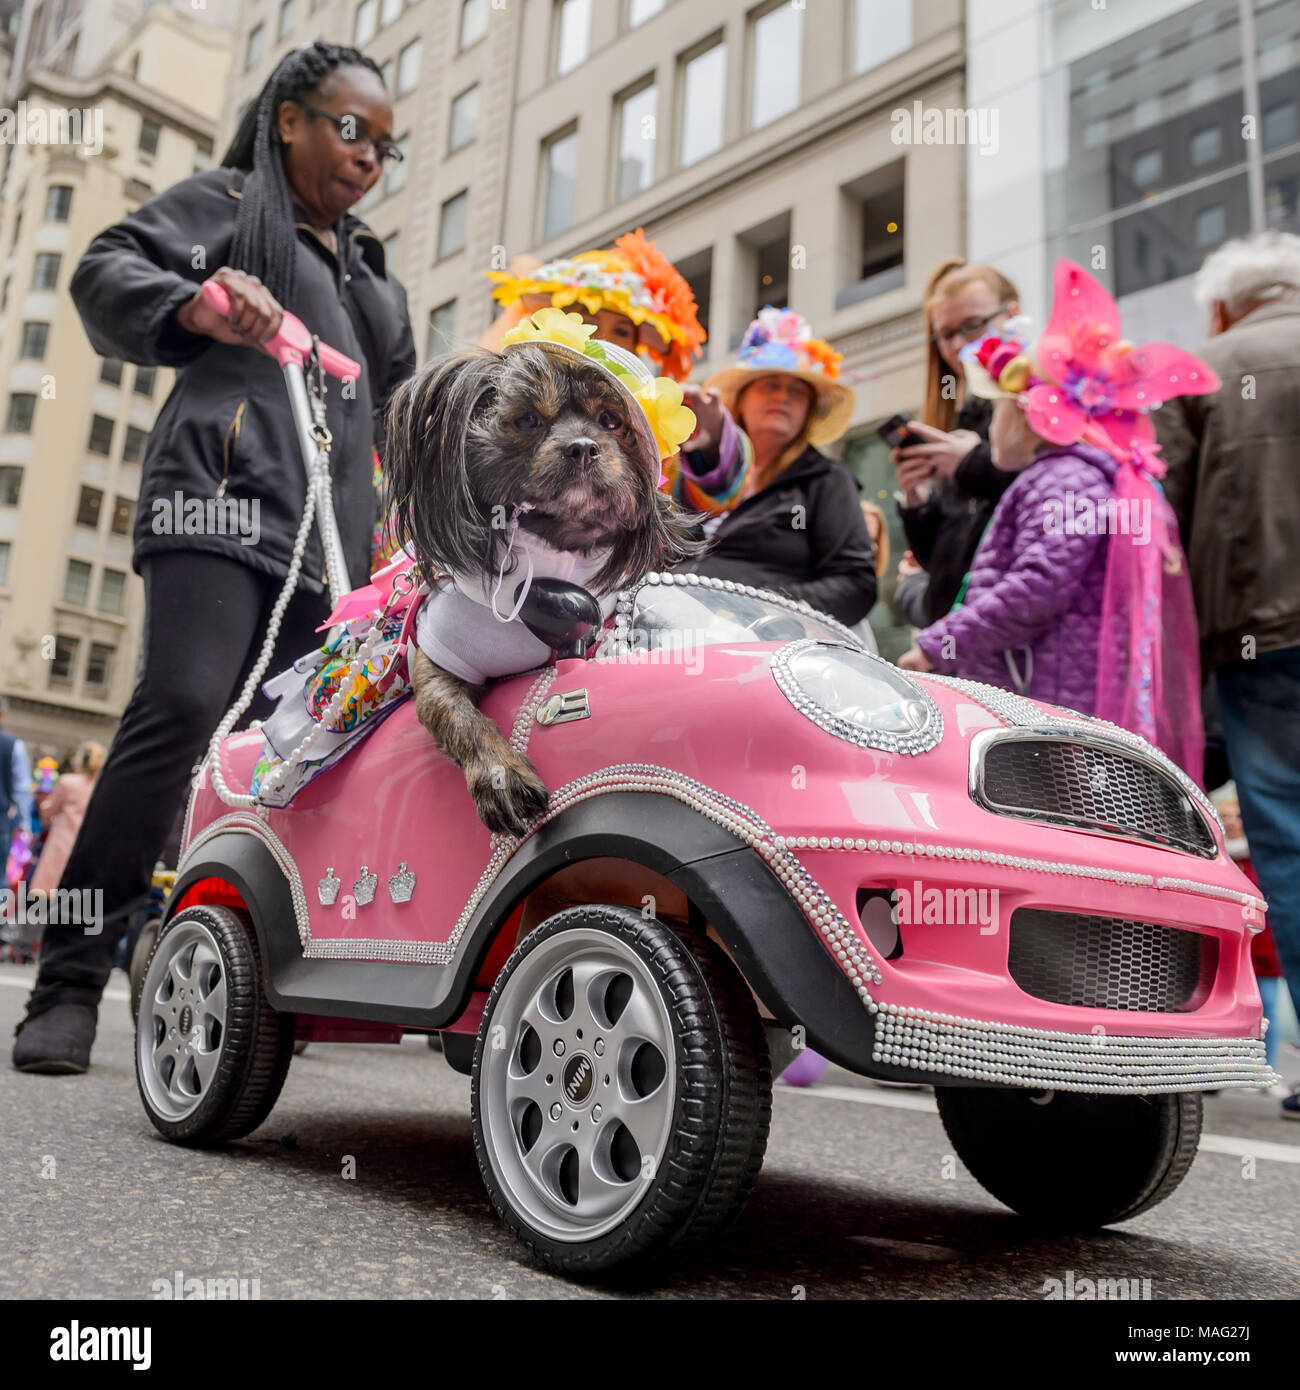 New York, United States. 01st Apr, 2018. The annual Easter Parade and Easter Bonnet Festival once again takes over a sliver of Midtow; as revelers dressed in their holiday finery (which typically includes over-the-top, often handmade hats) gather around St. Patrick's Cathedral. The tradition has remained a spring staple in the city, Easter parade attendees take the opportunity to go all-out, with creative hats (many decked out with flowers, tiny renderings of NYC landmarks, or Peeps) and other accessories now the norm. Credit: Erik McGregor/Pacific Press/Alamy Live News - Stock Image